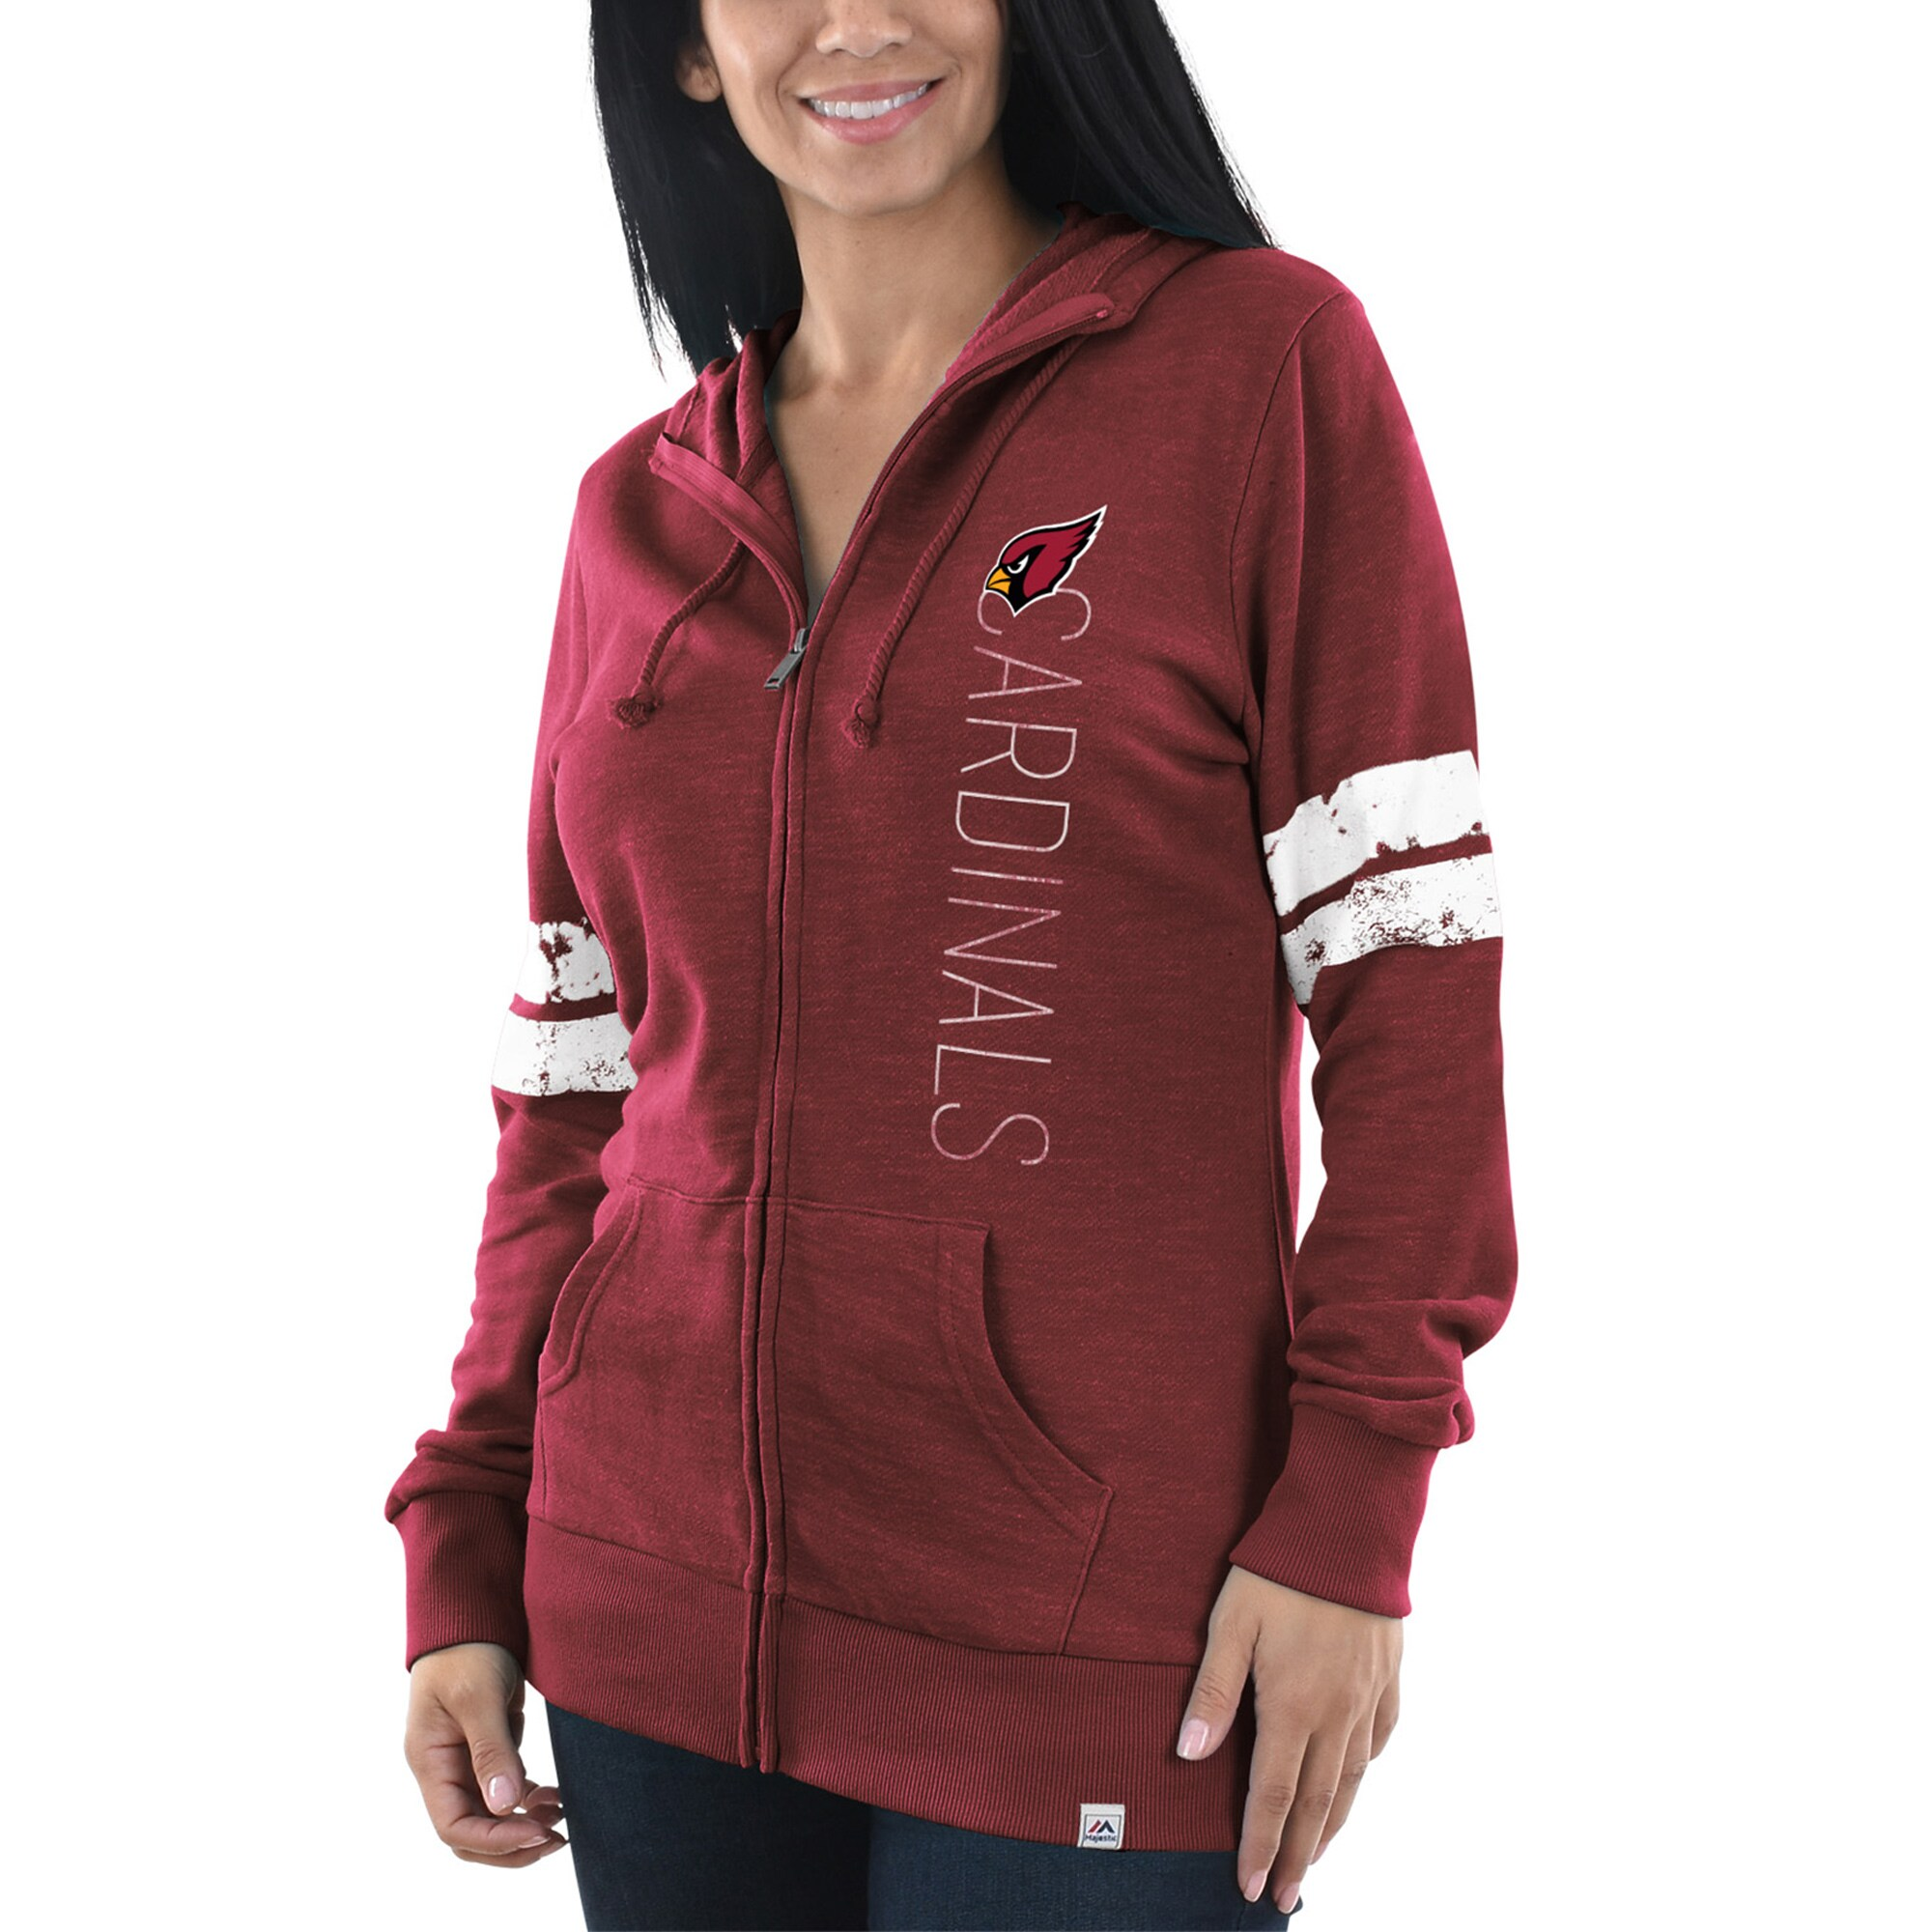 Arizona Cardinals Majestic Women's Athletic Tradition Full-Zip Hoodie - Heathered Cardinal